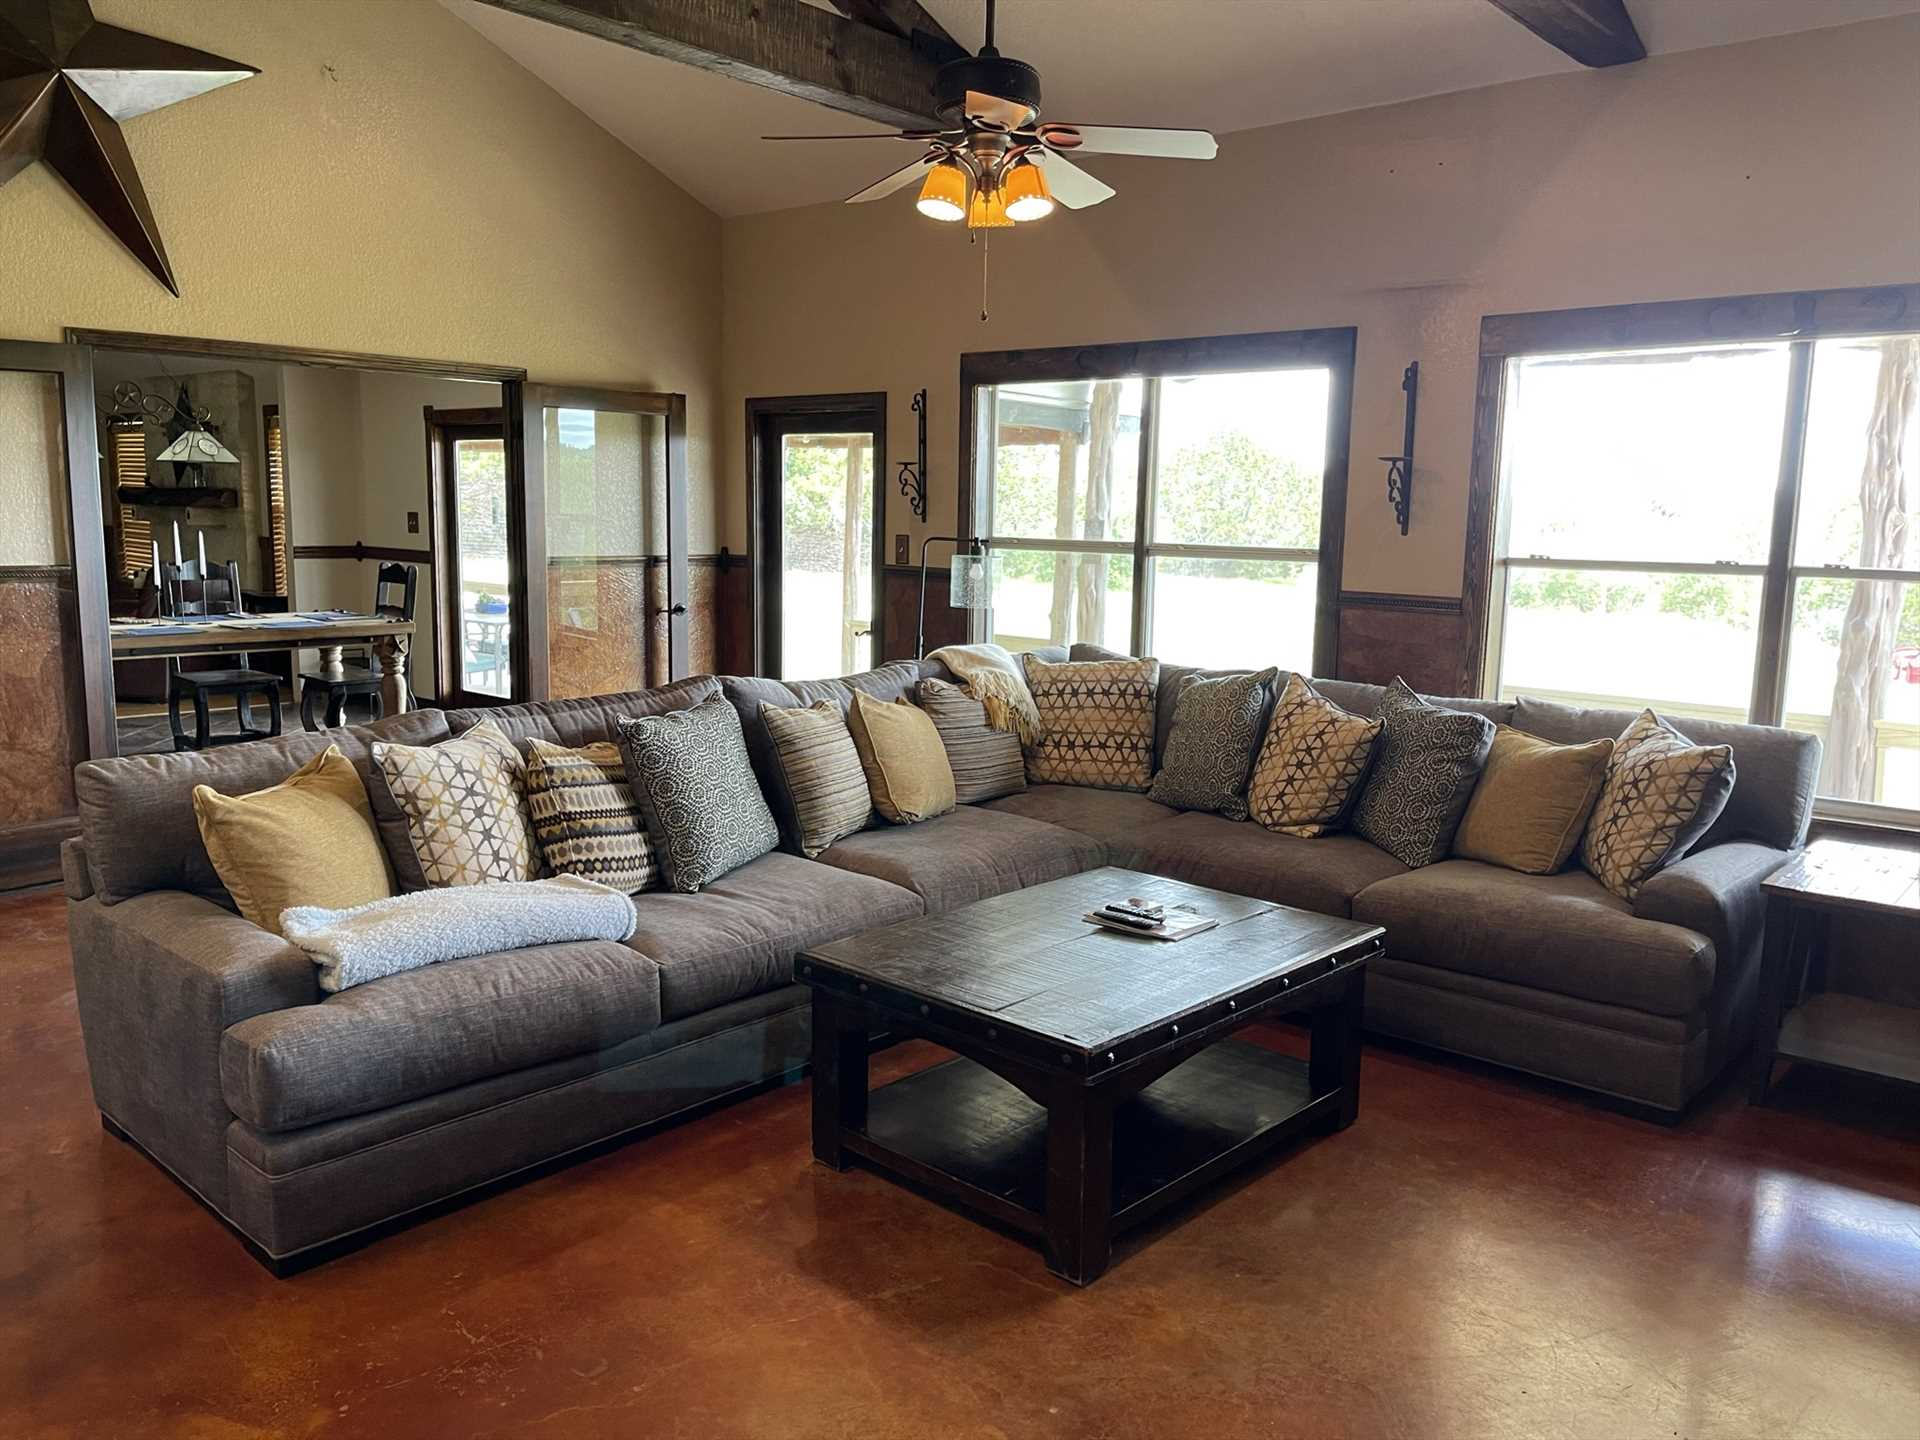 The enormous and comfortable living area sets the perfect stage for games, movie nights, and conversation!